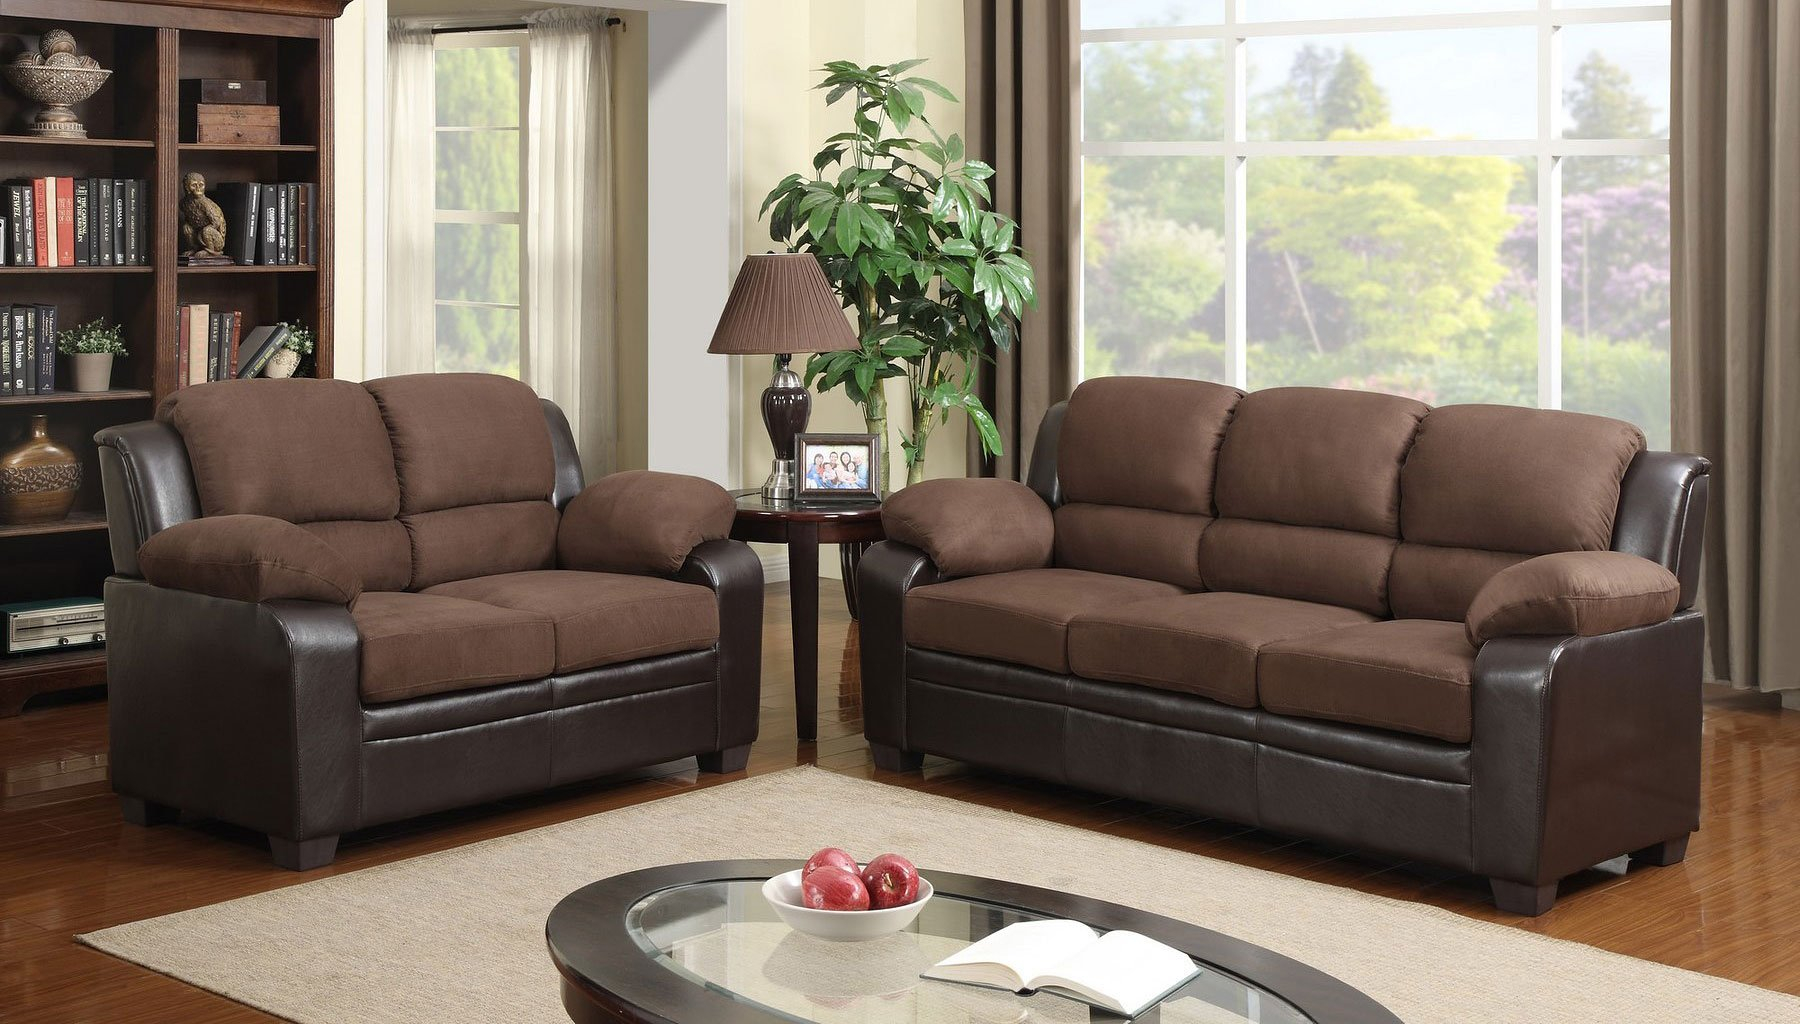 U880018 Living Room Set Microfiber And Pvc Global Furniture throughout 12 Smart Ideas How to Improve Microfiber Living Room Sets